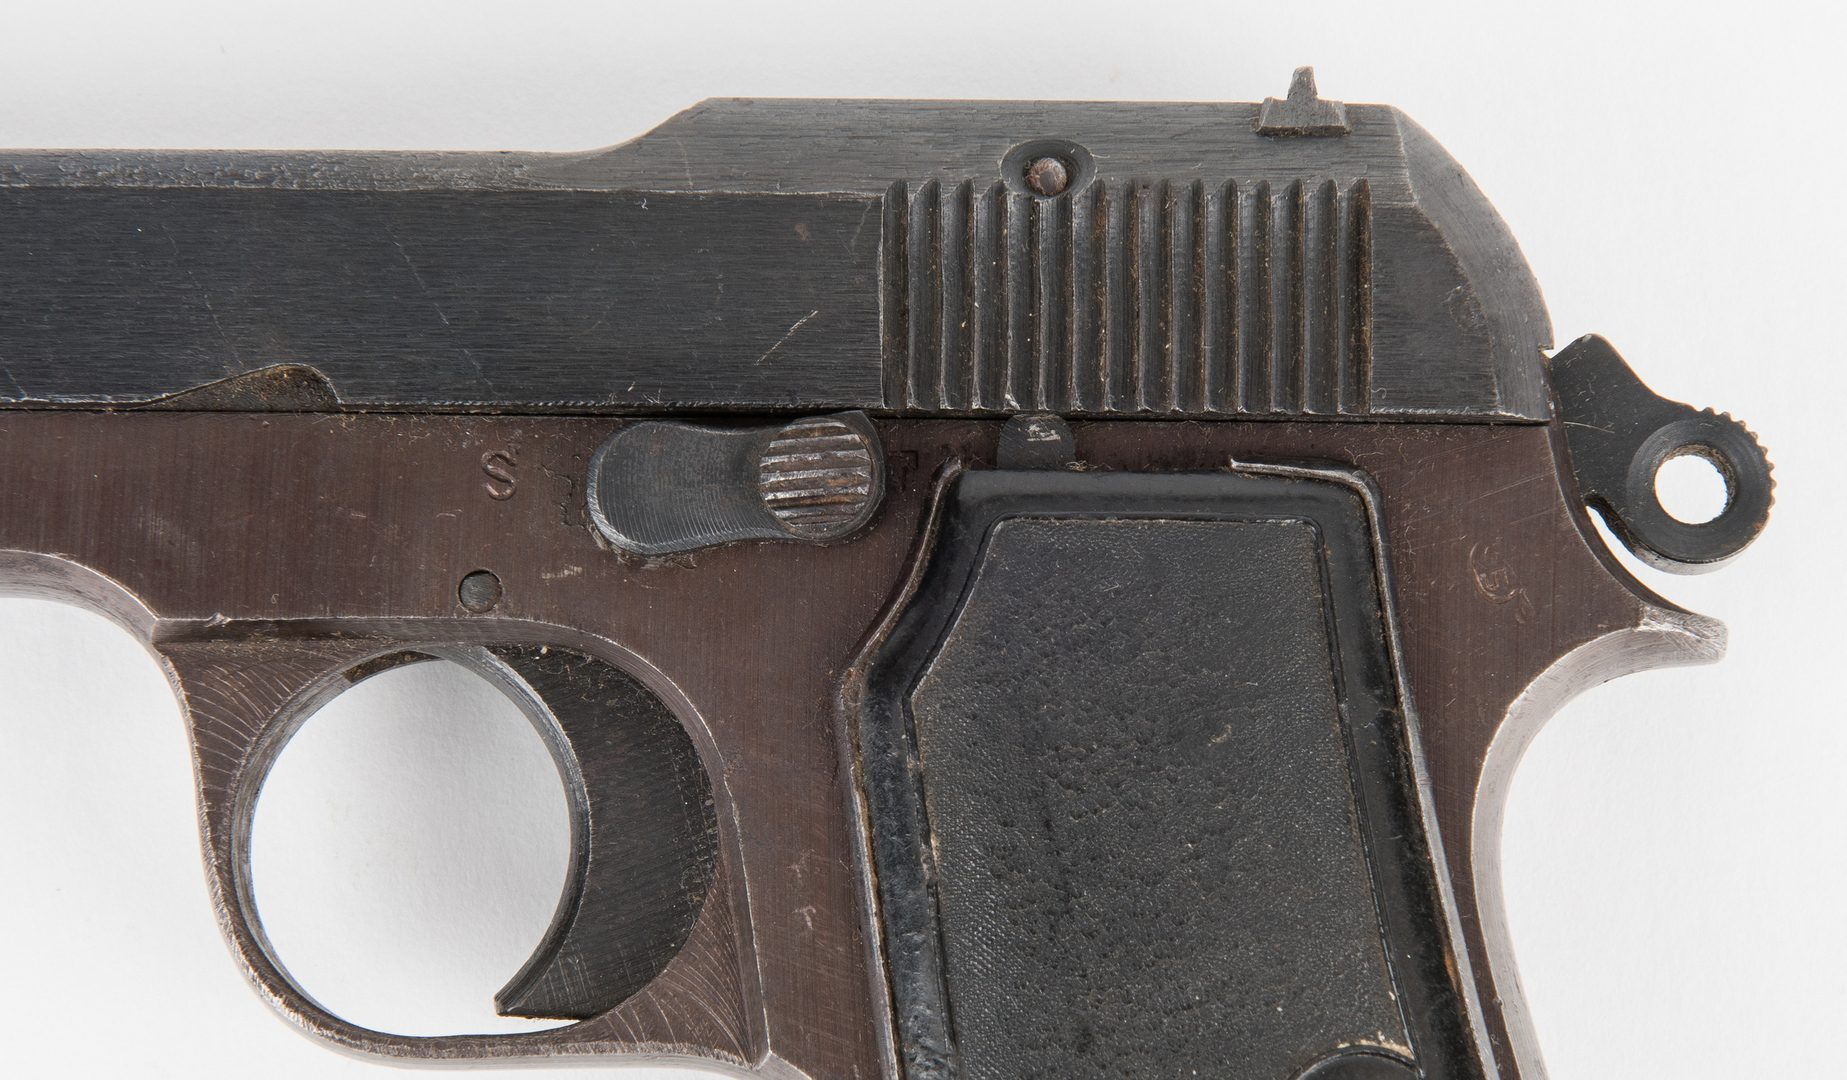 Lot 793: 3 20th Century European Automatic Pistols, 7.65mm cal